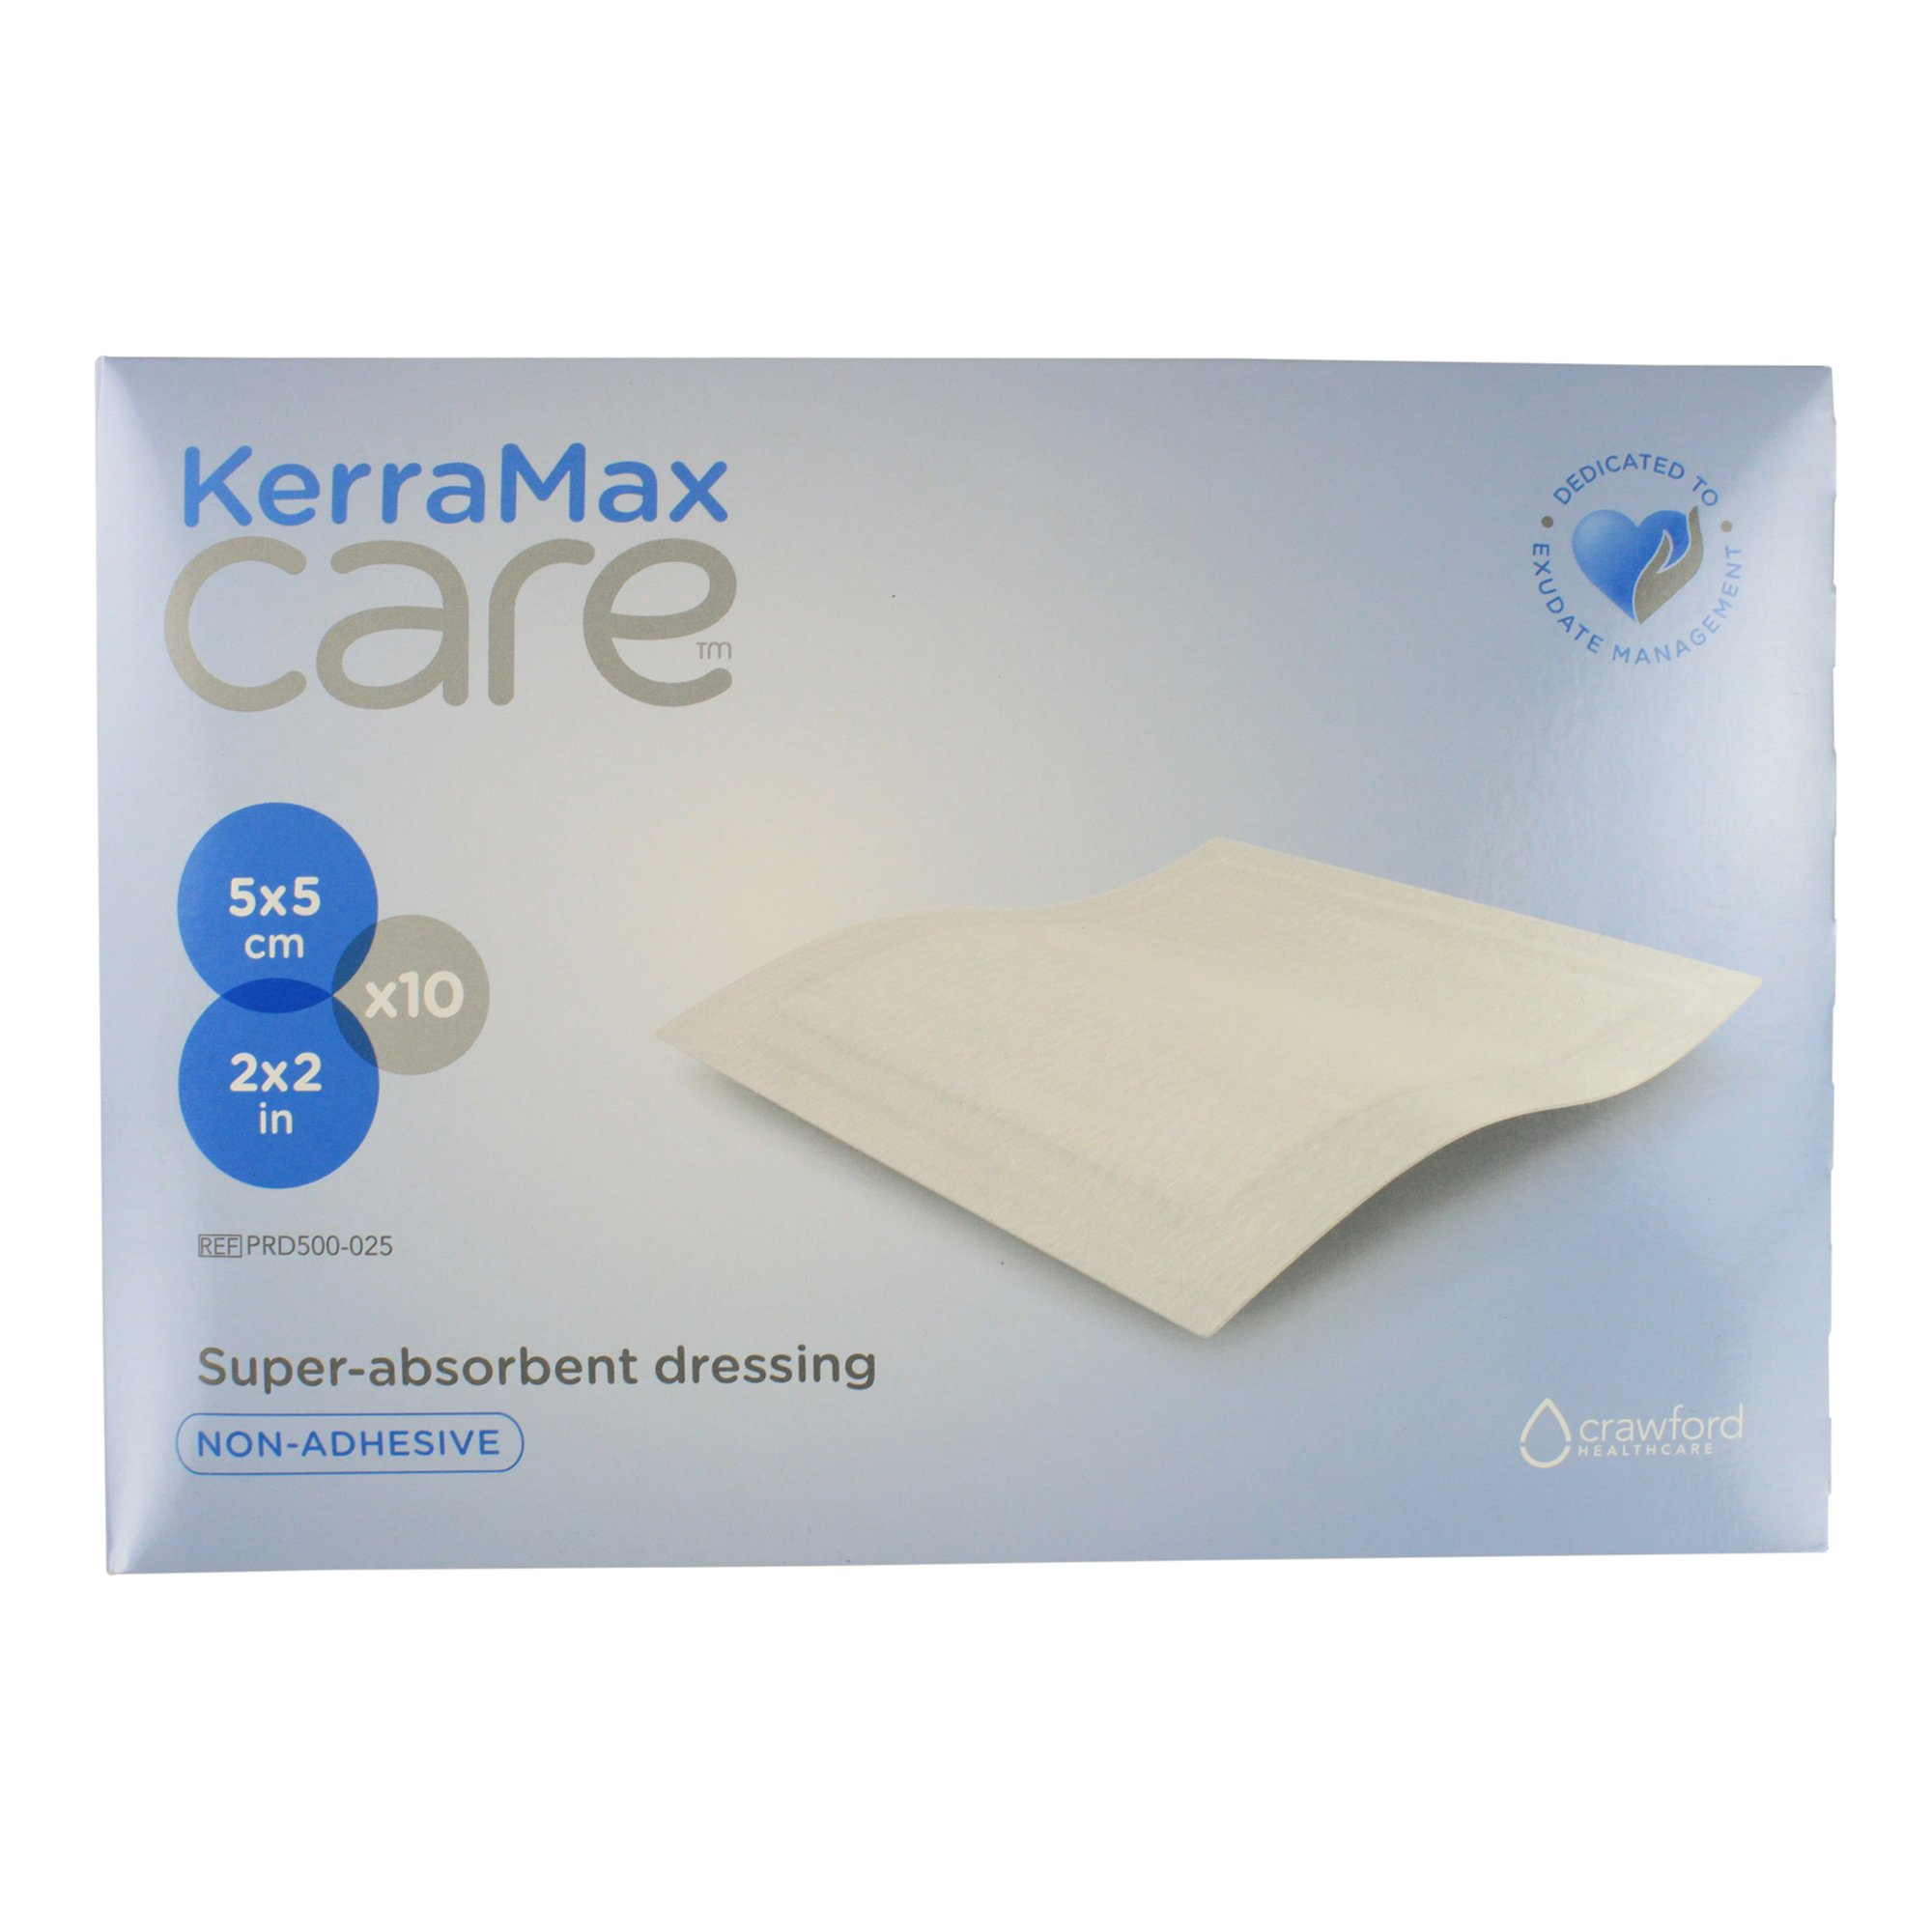 KerraMax Care 2''x2'' Super Absorbent Wound Dressing (PRD500-025) – Absorbs Exudate and Isolates it, Preventing Leaks or Drips for Improved Patient Comfort and Wound Care Treatment (Box of 10)